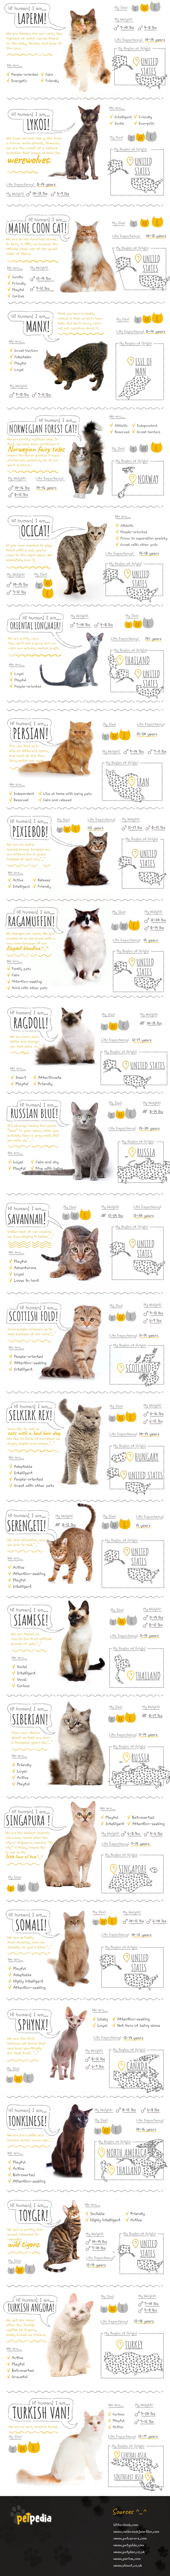 50 of the Most Popular Cat Breeds in the World (Infographic) (2)